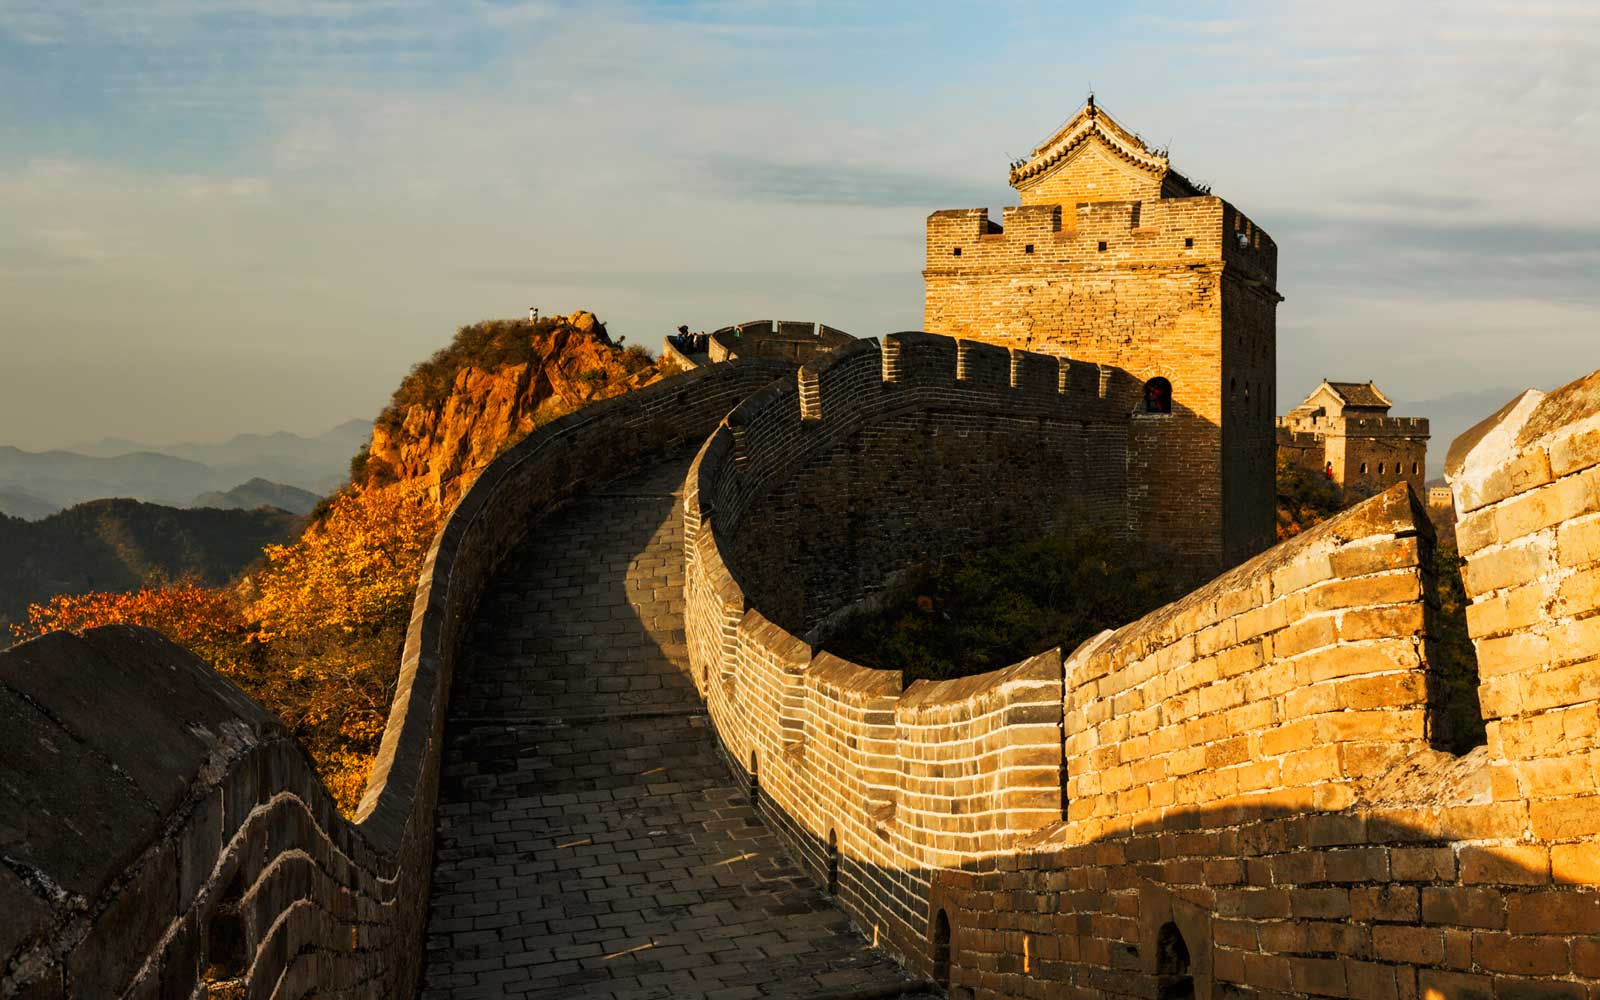 The Great Wall of China Is Getting Restored With the Help of Drones